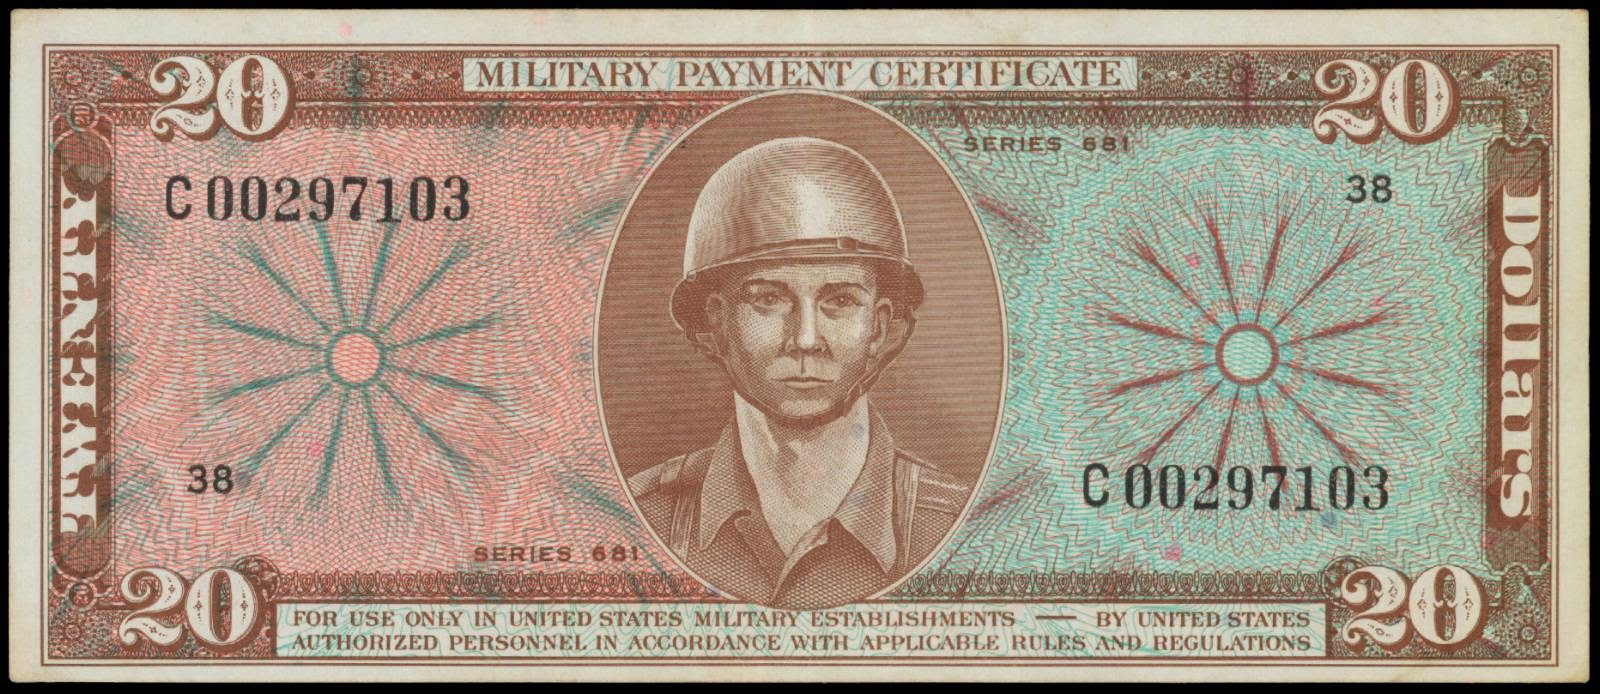 Military Payment Certificate 20 Dollars MPC Series 681